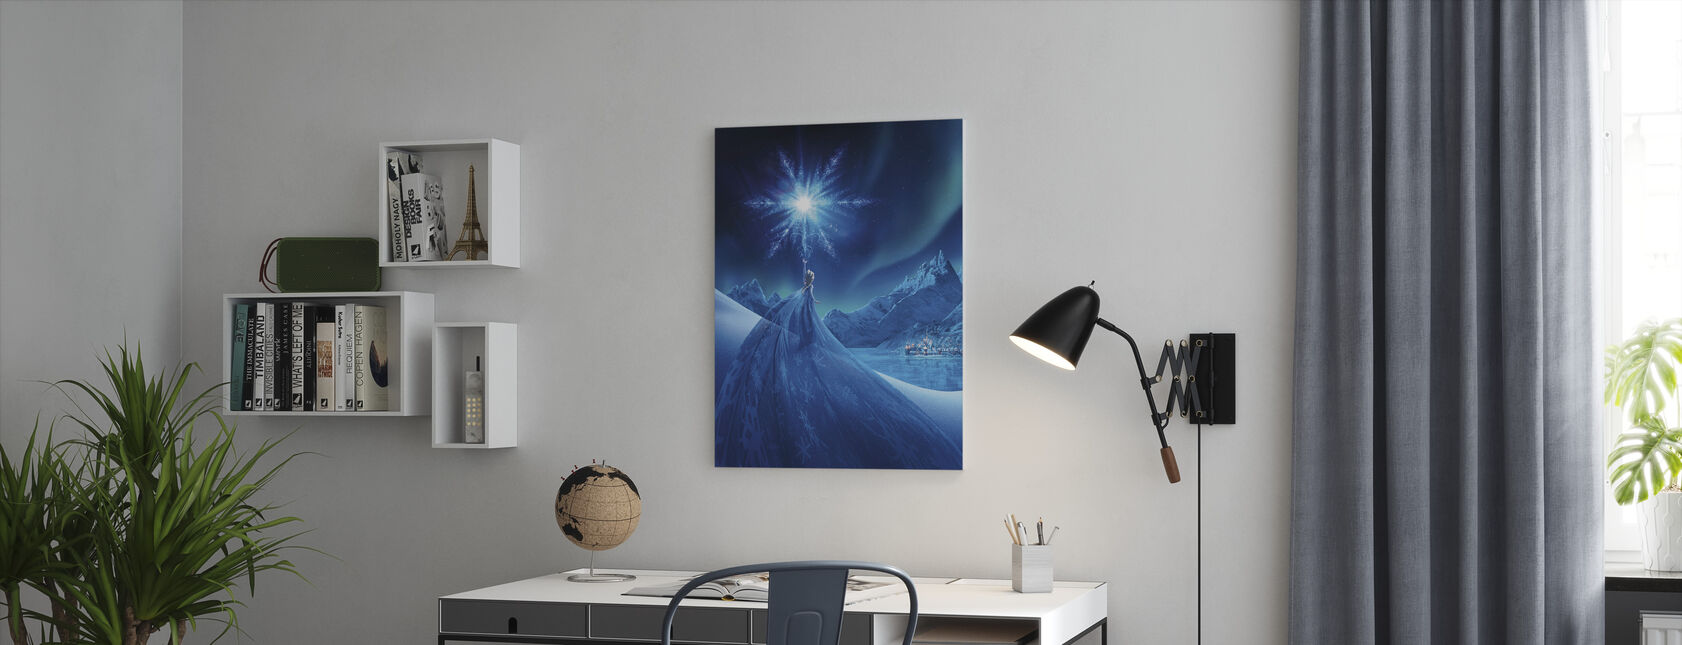 Frozen - Magic of the Northern Lights - Canvas print - Office